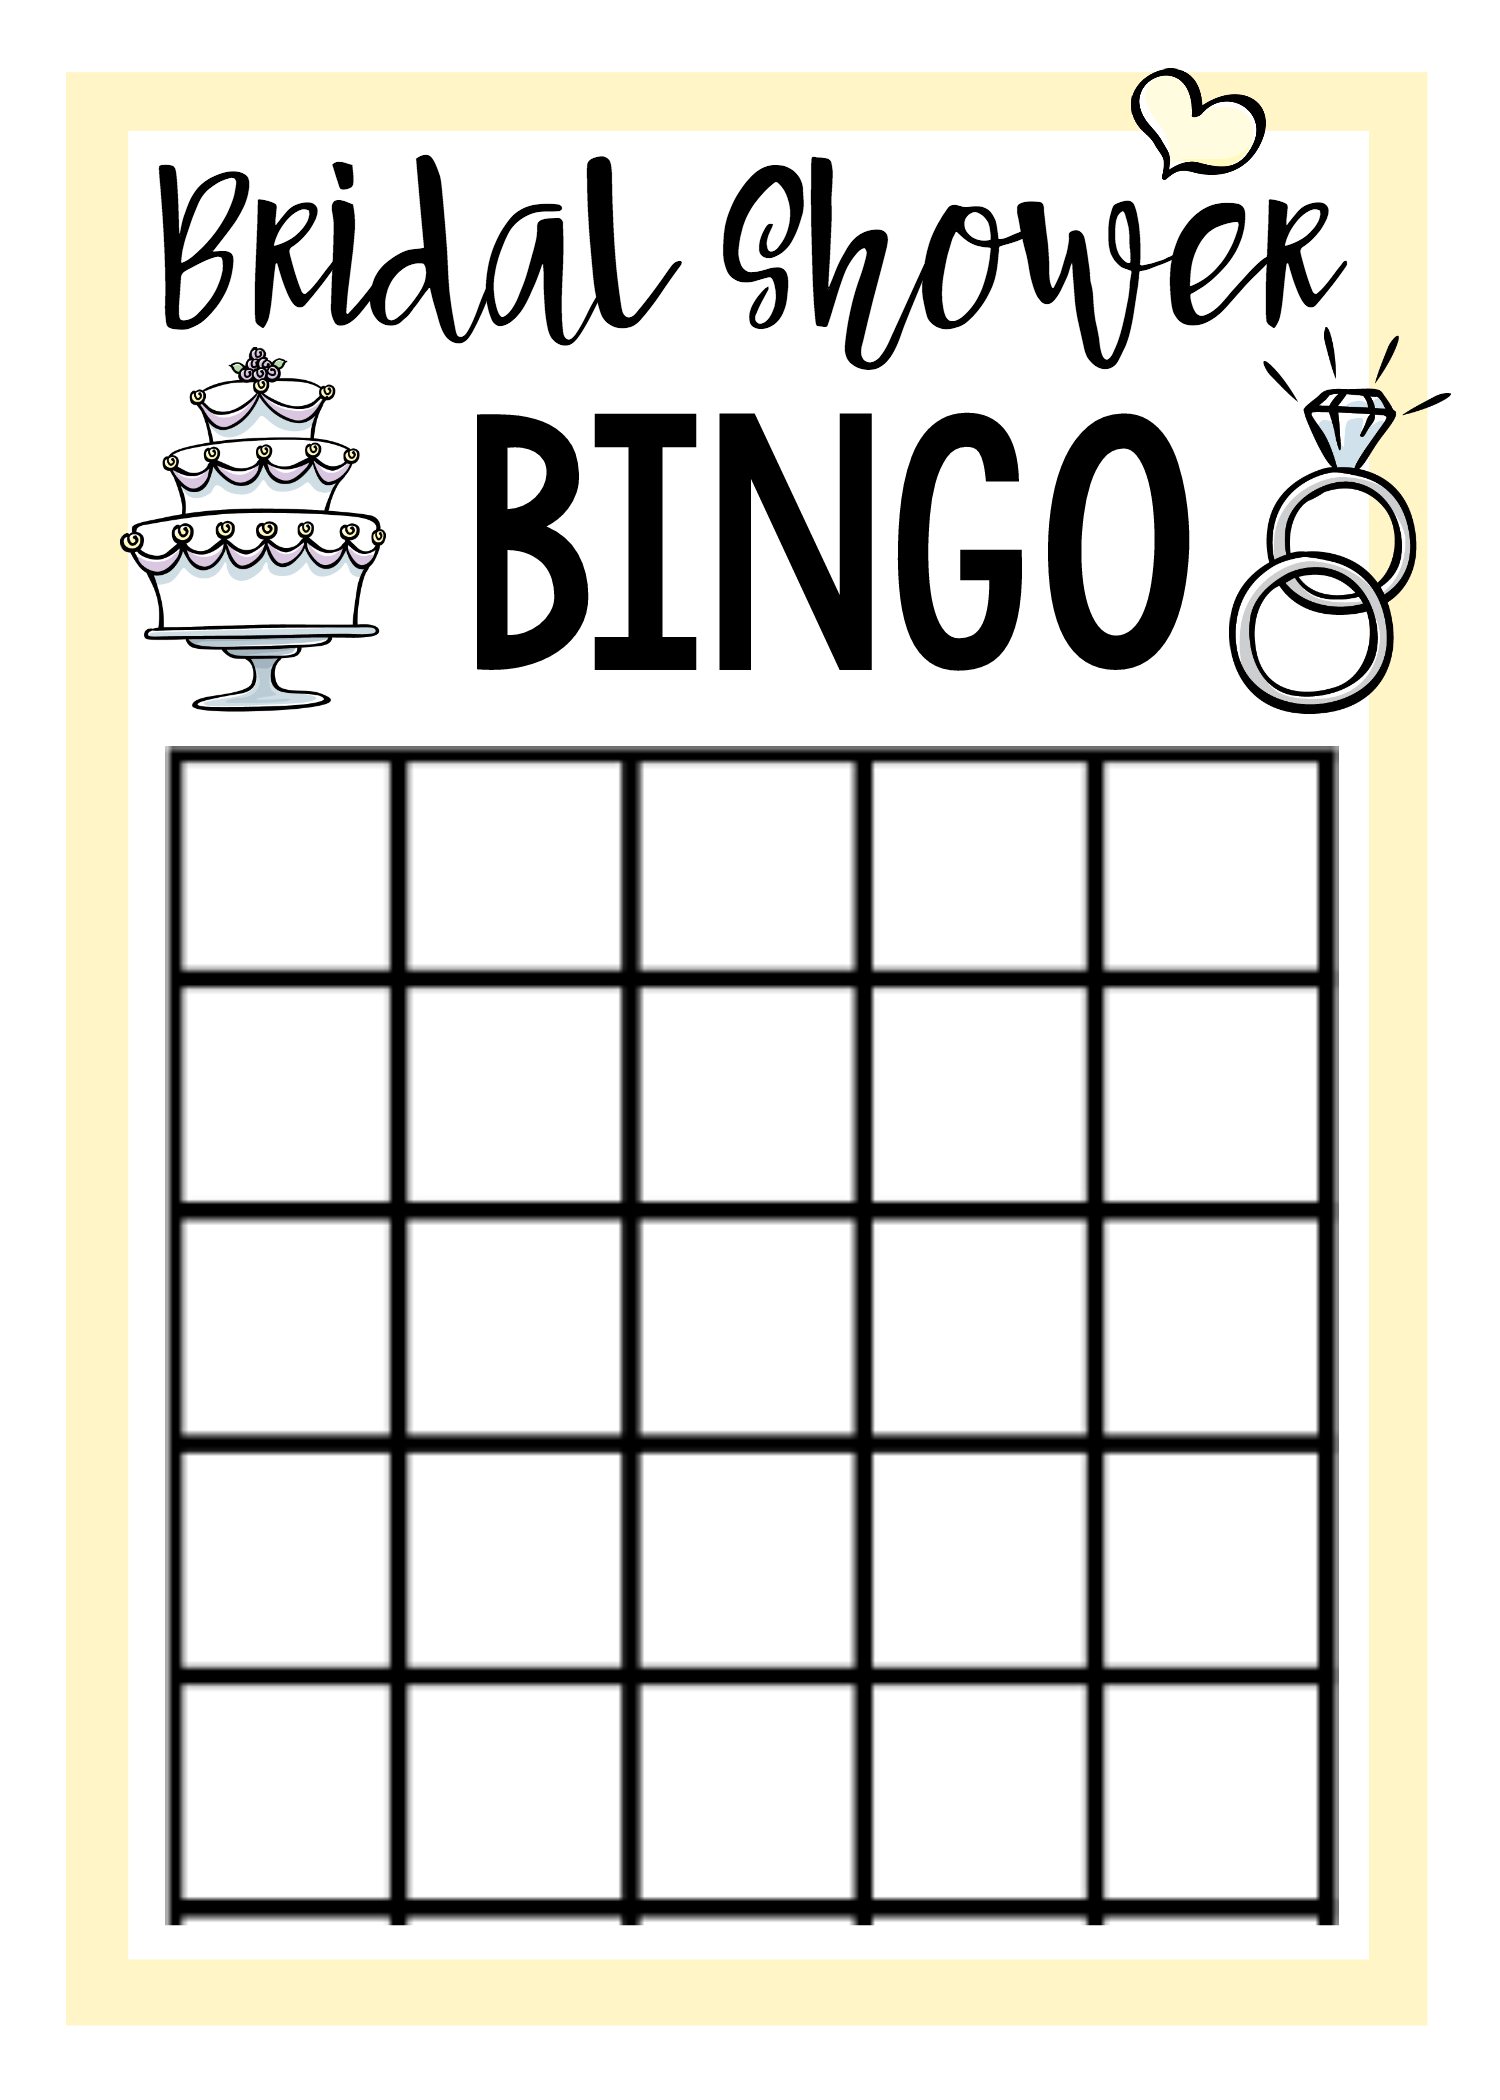 graphic relating to Free Printable Bridal Shower Bingo called Cost-free Printable Bridal Shower Video games Wedding day Enjoyable bridal